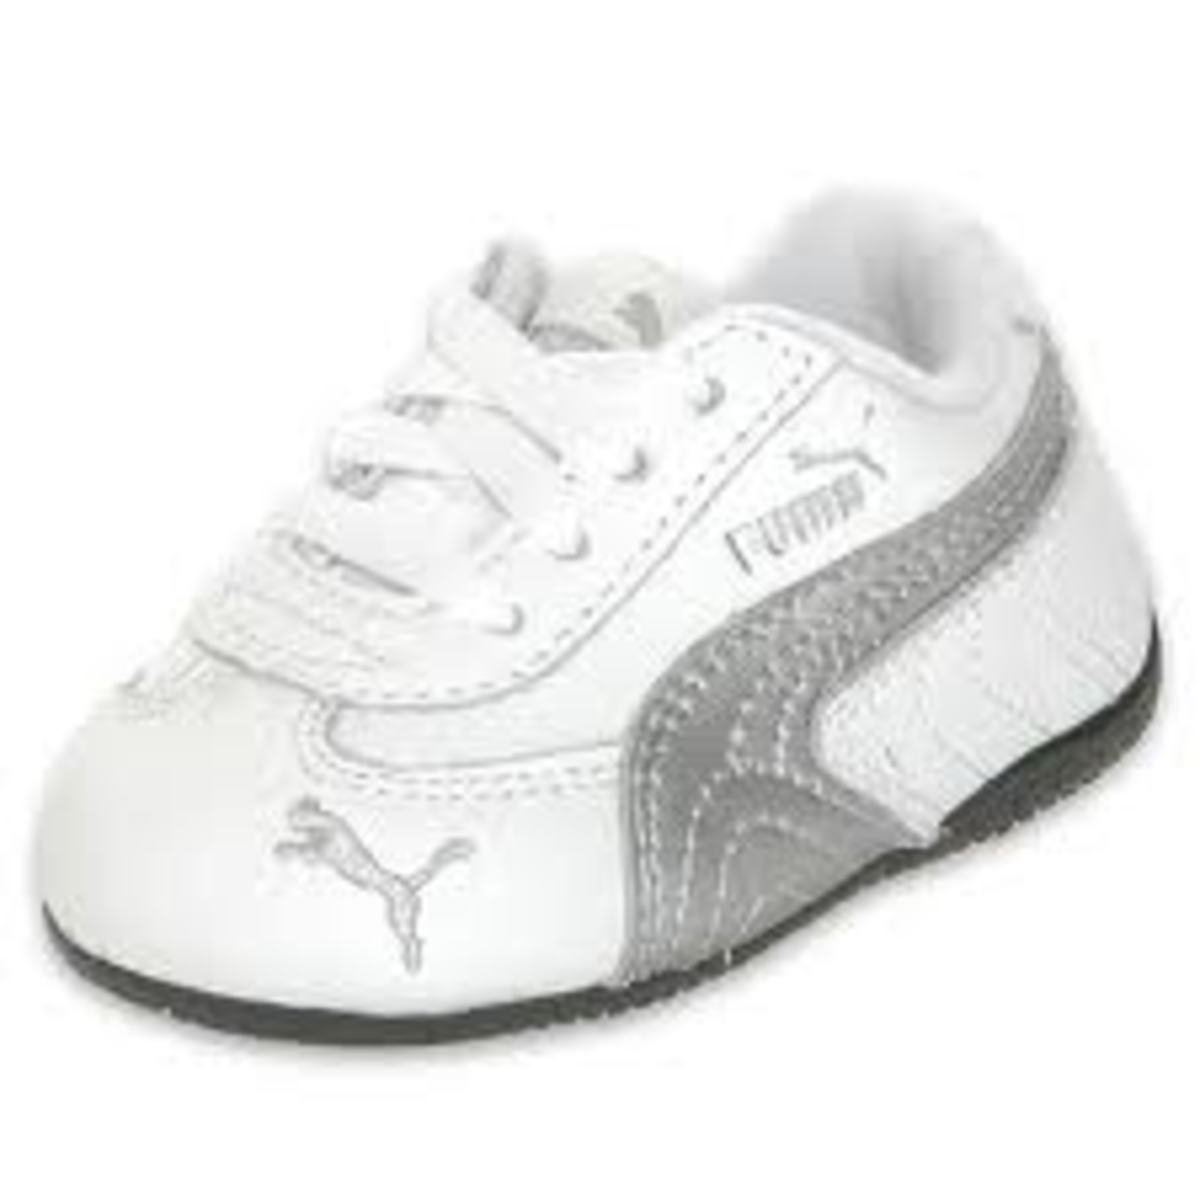 Toddler Puma shoes come in many styles and colors for boys and girls.